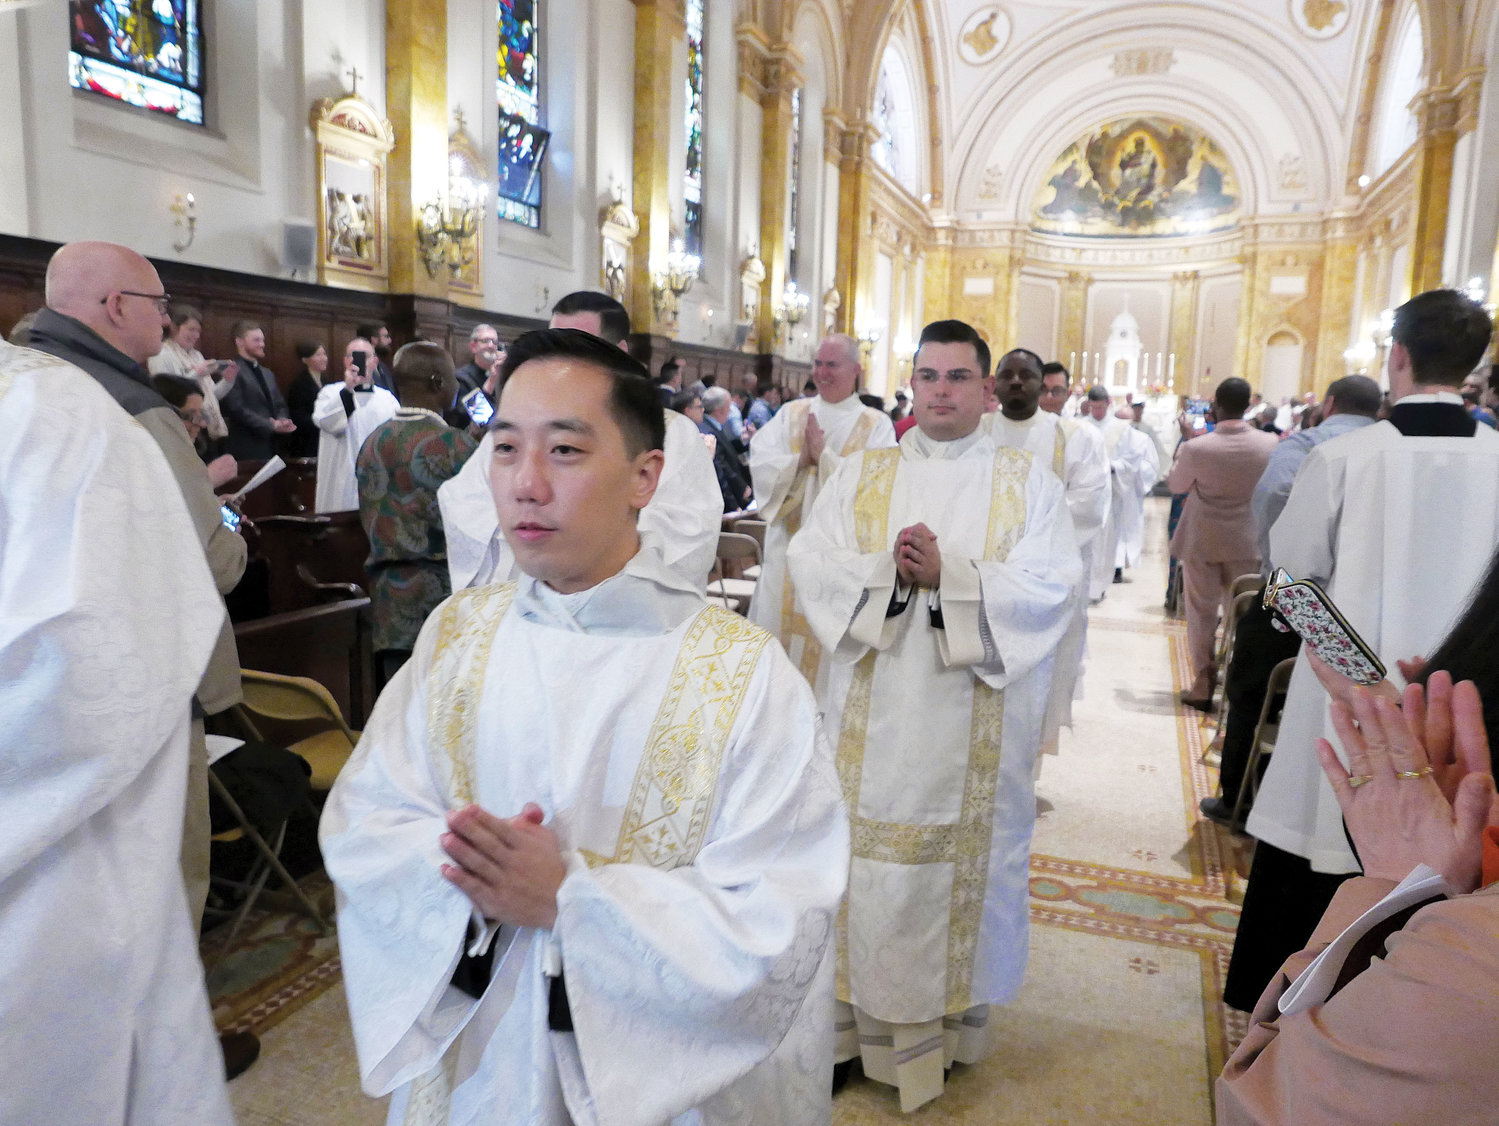 Deacon Roger Kwan leads the newly ordained deacons in the recessional.